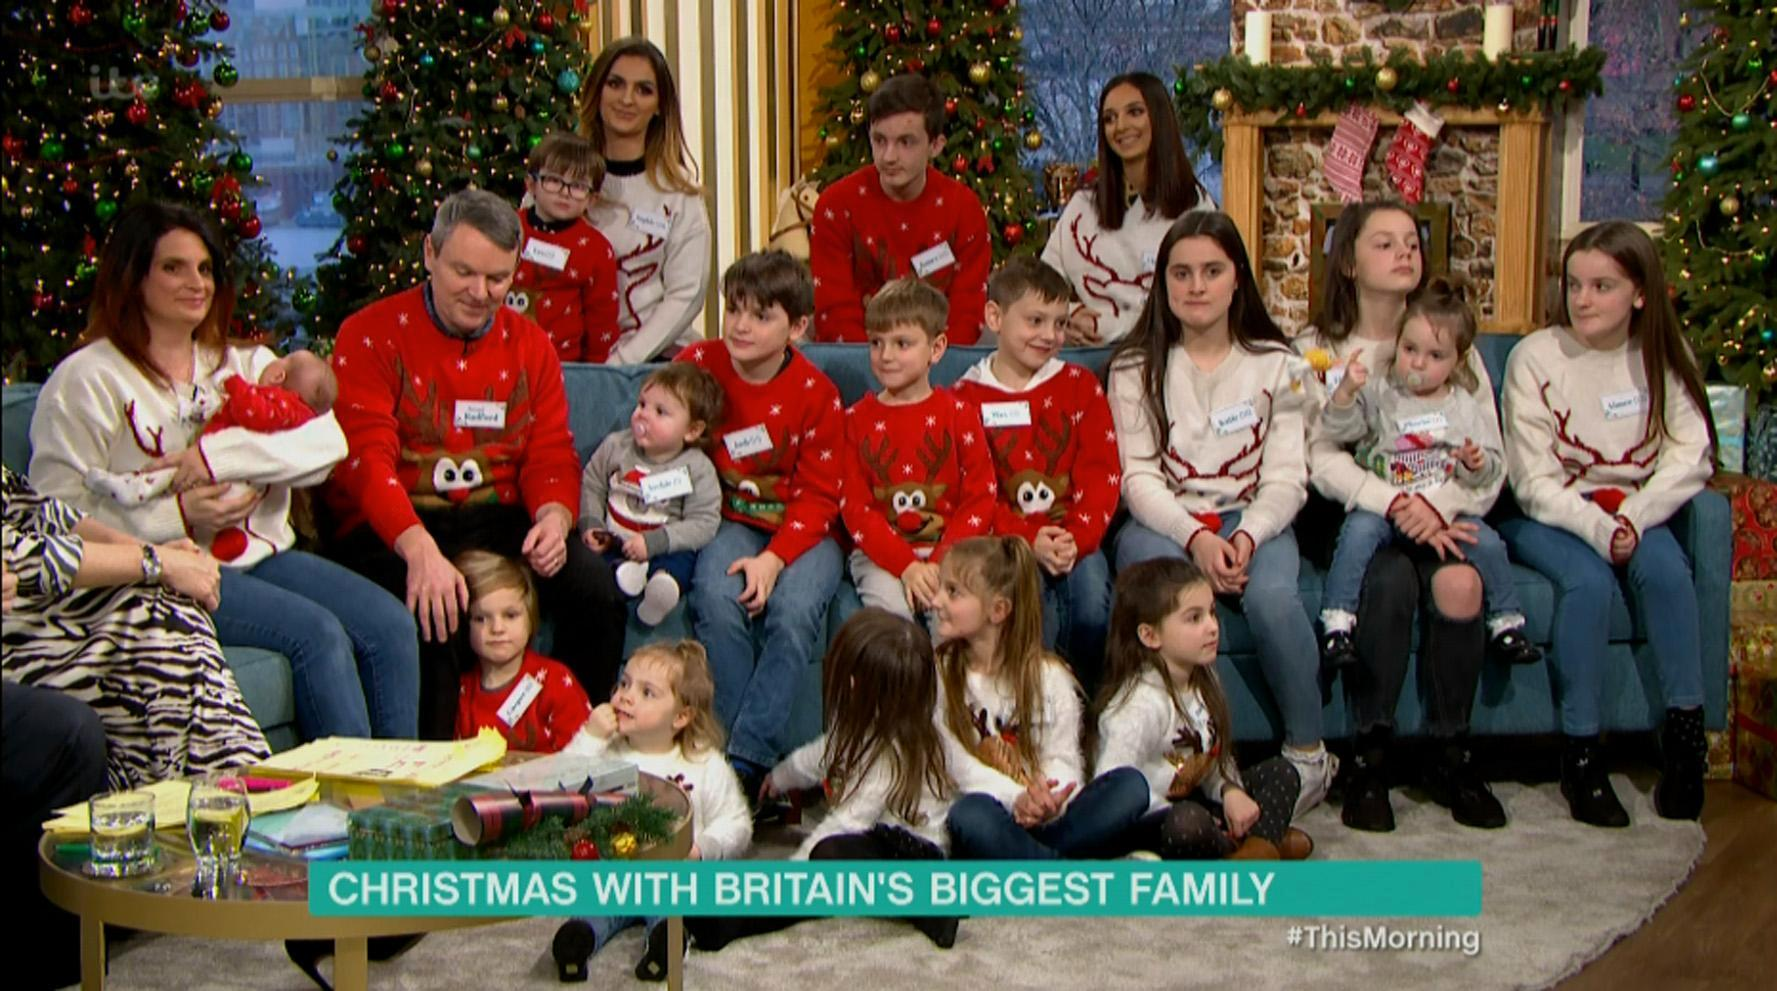 Britain's biggest family The Radfords reveal how they are preparing for Christmas after welcoming 21st child… and insist this is the last baby